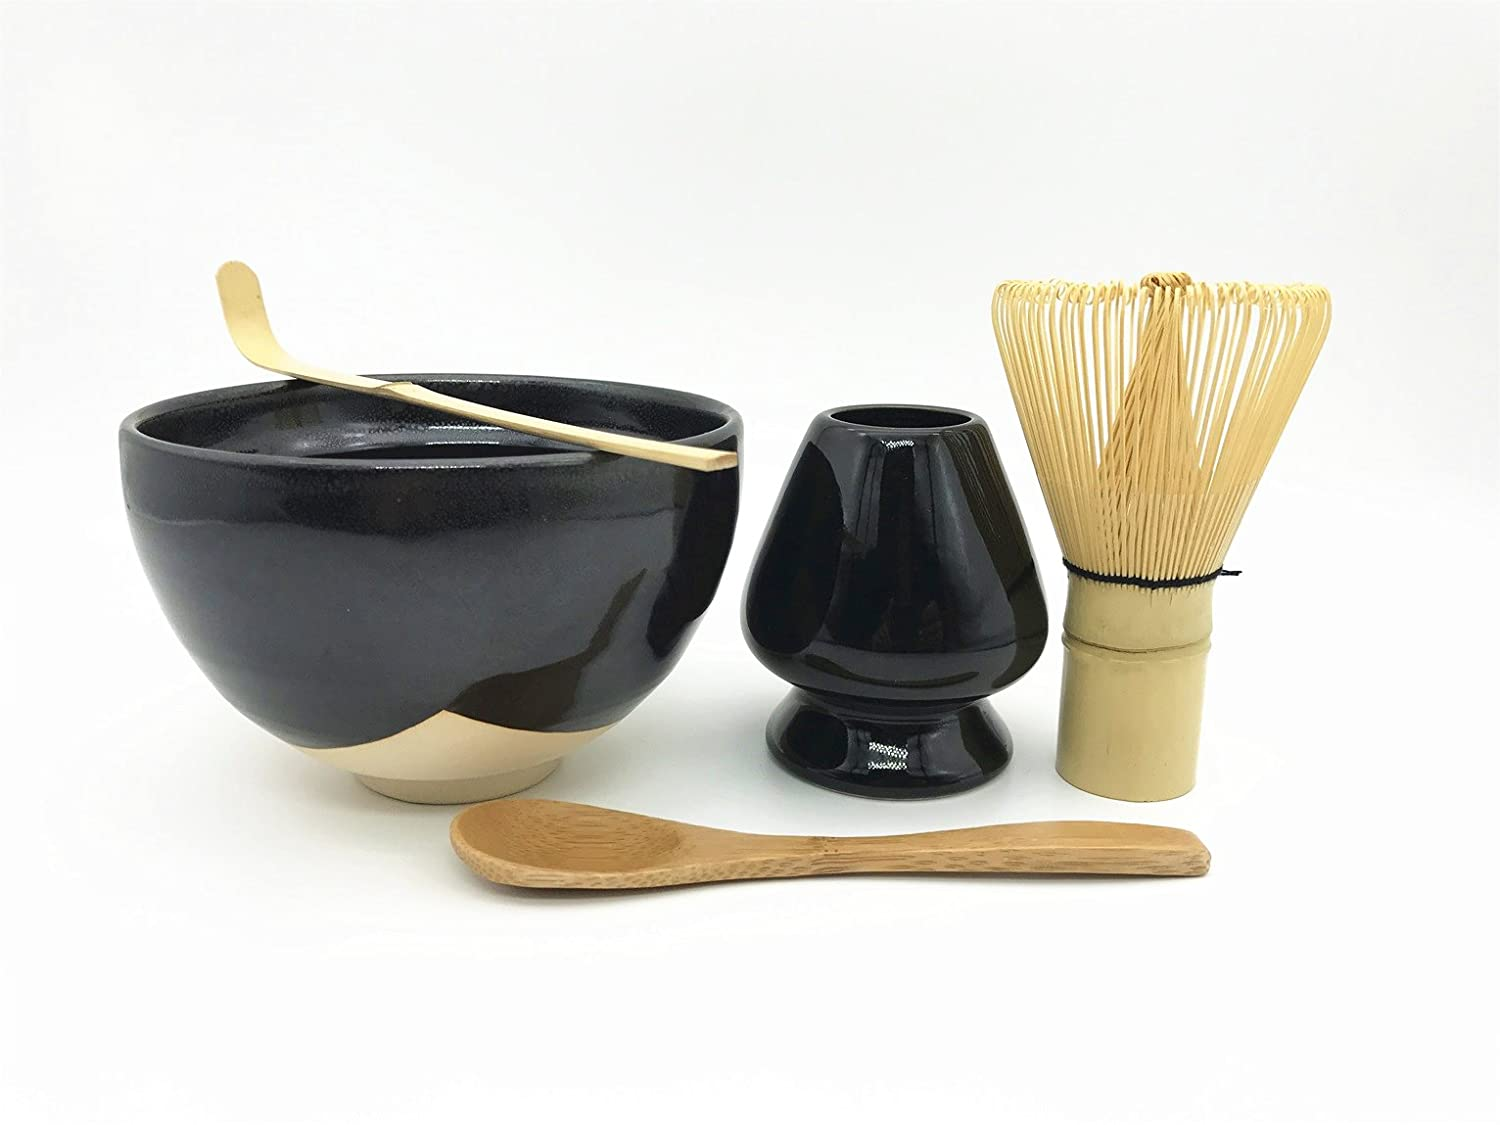 CHAQI 5 Items Matcha Ceremony Start Up Kit:Bamboo Whisk,Spoon /& Scoop,Ceramic Matcha Bowl and Whisk Holder-Complete Matcha Gift Set Home Soul Black 1